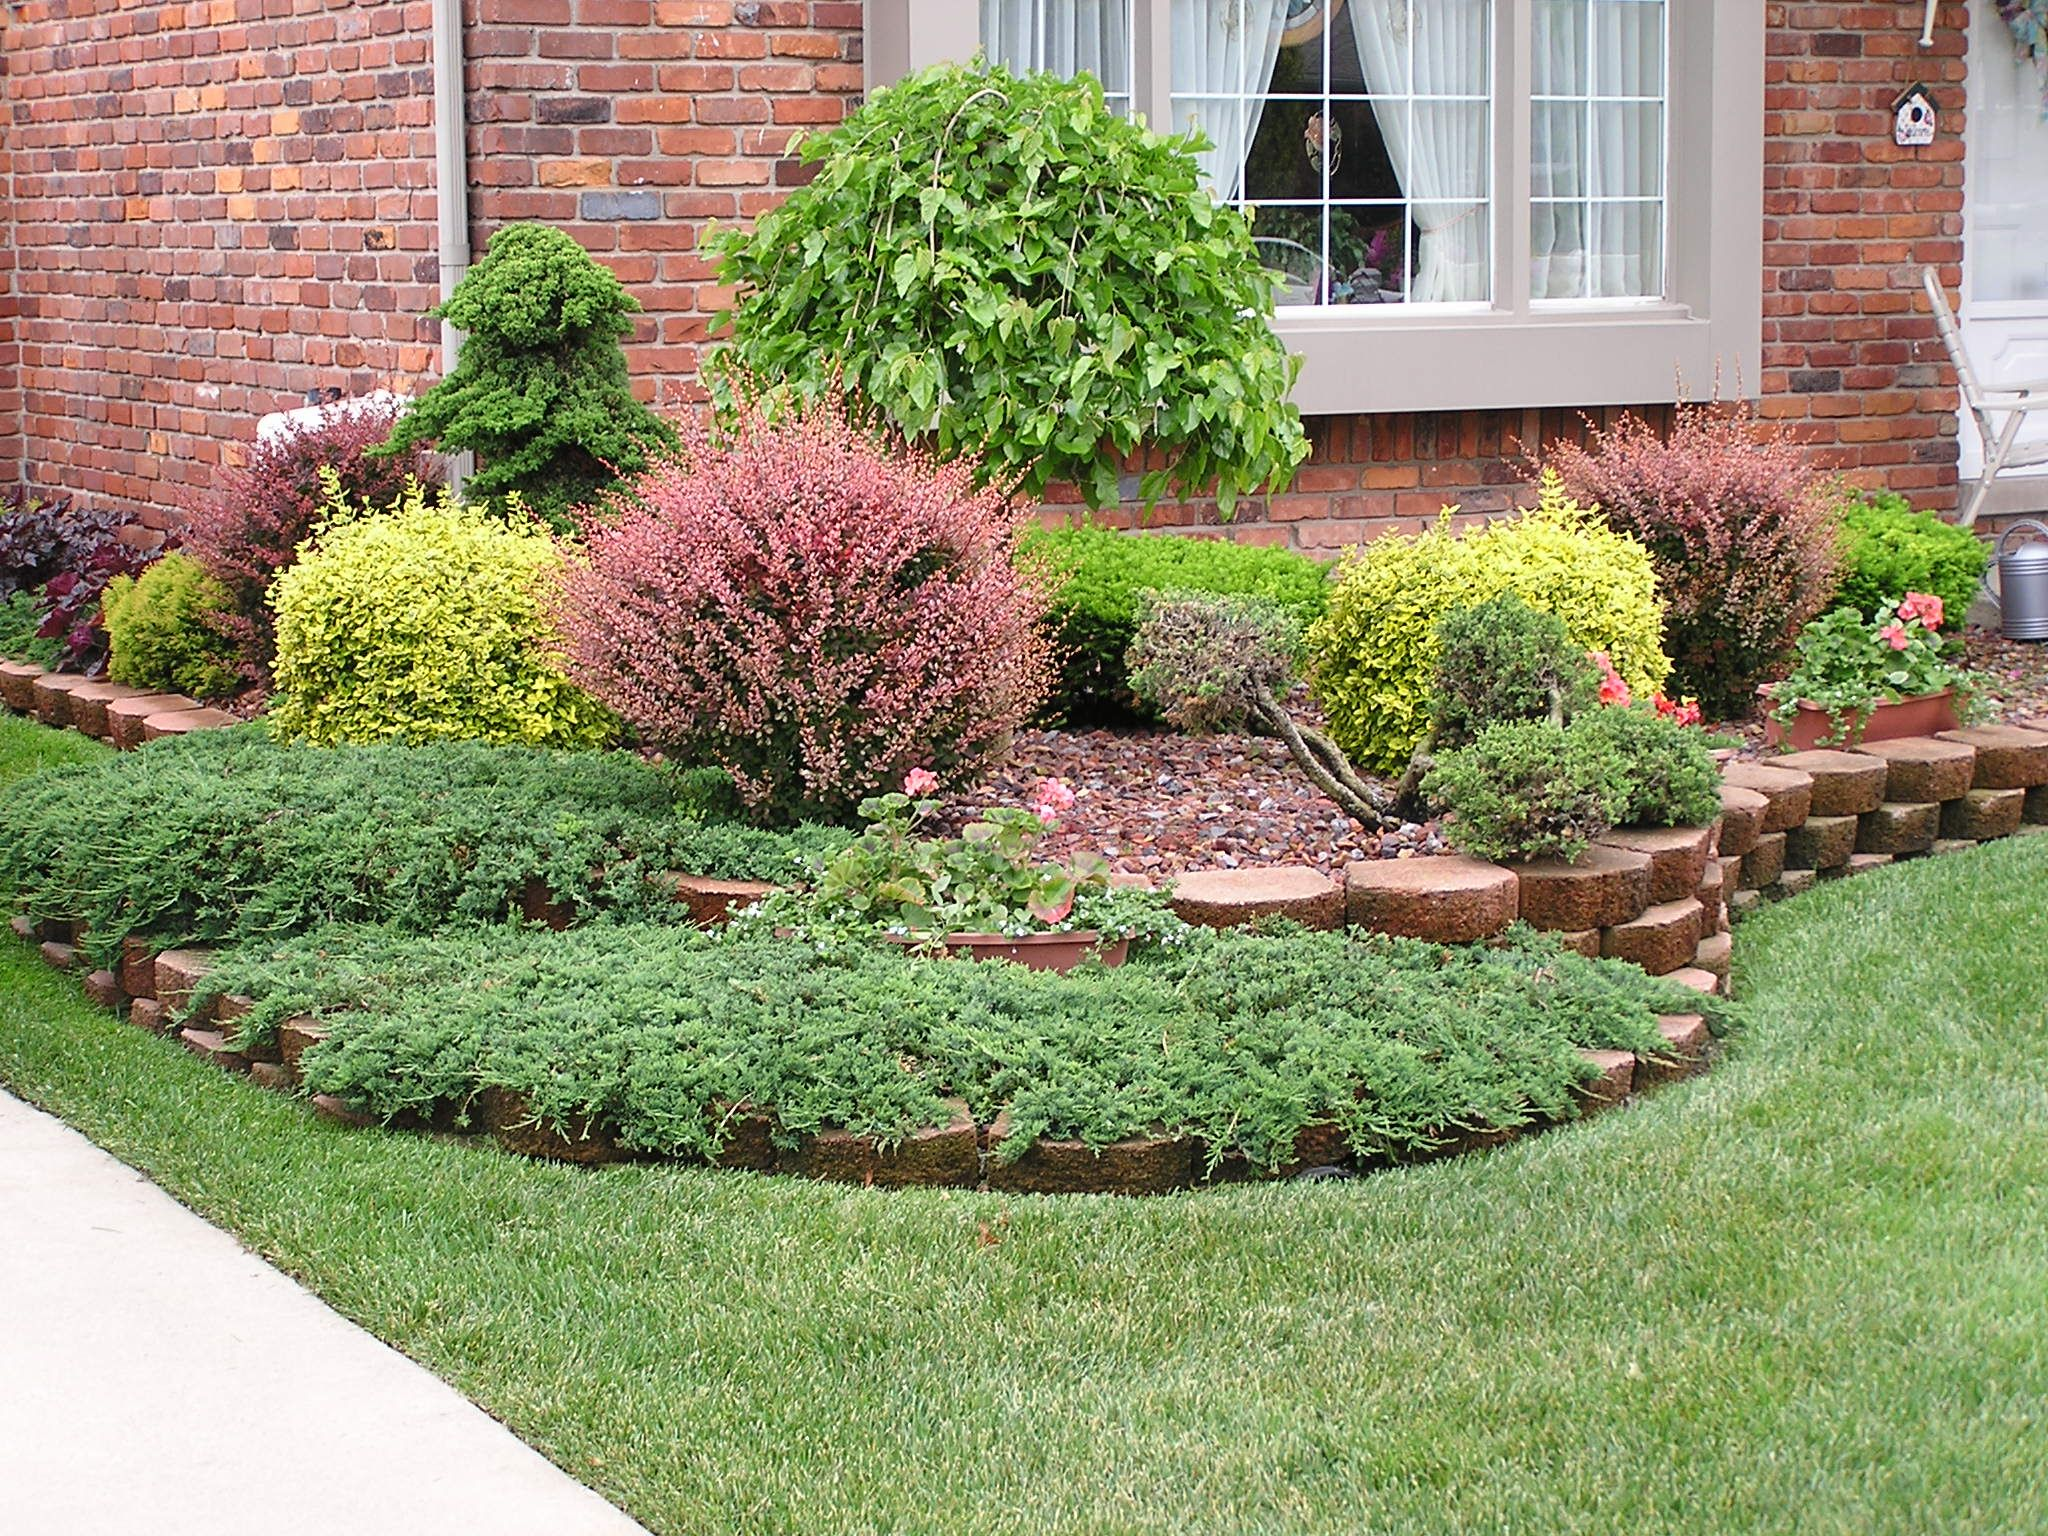 Colorful Shrubs And Bushes The Thorough Tree And Shrub Care